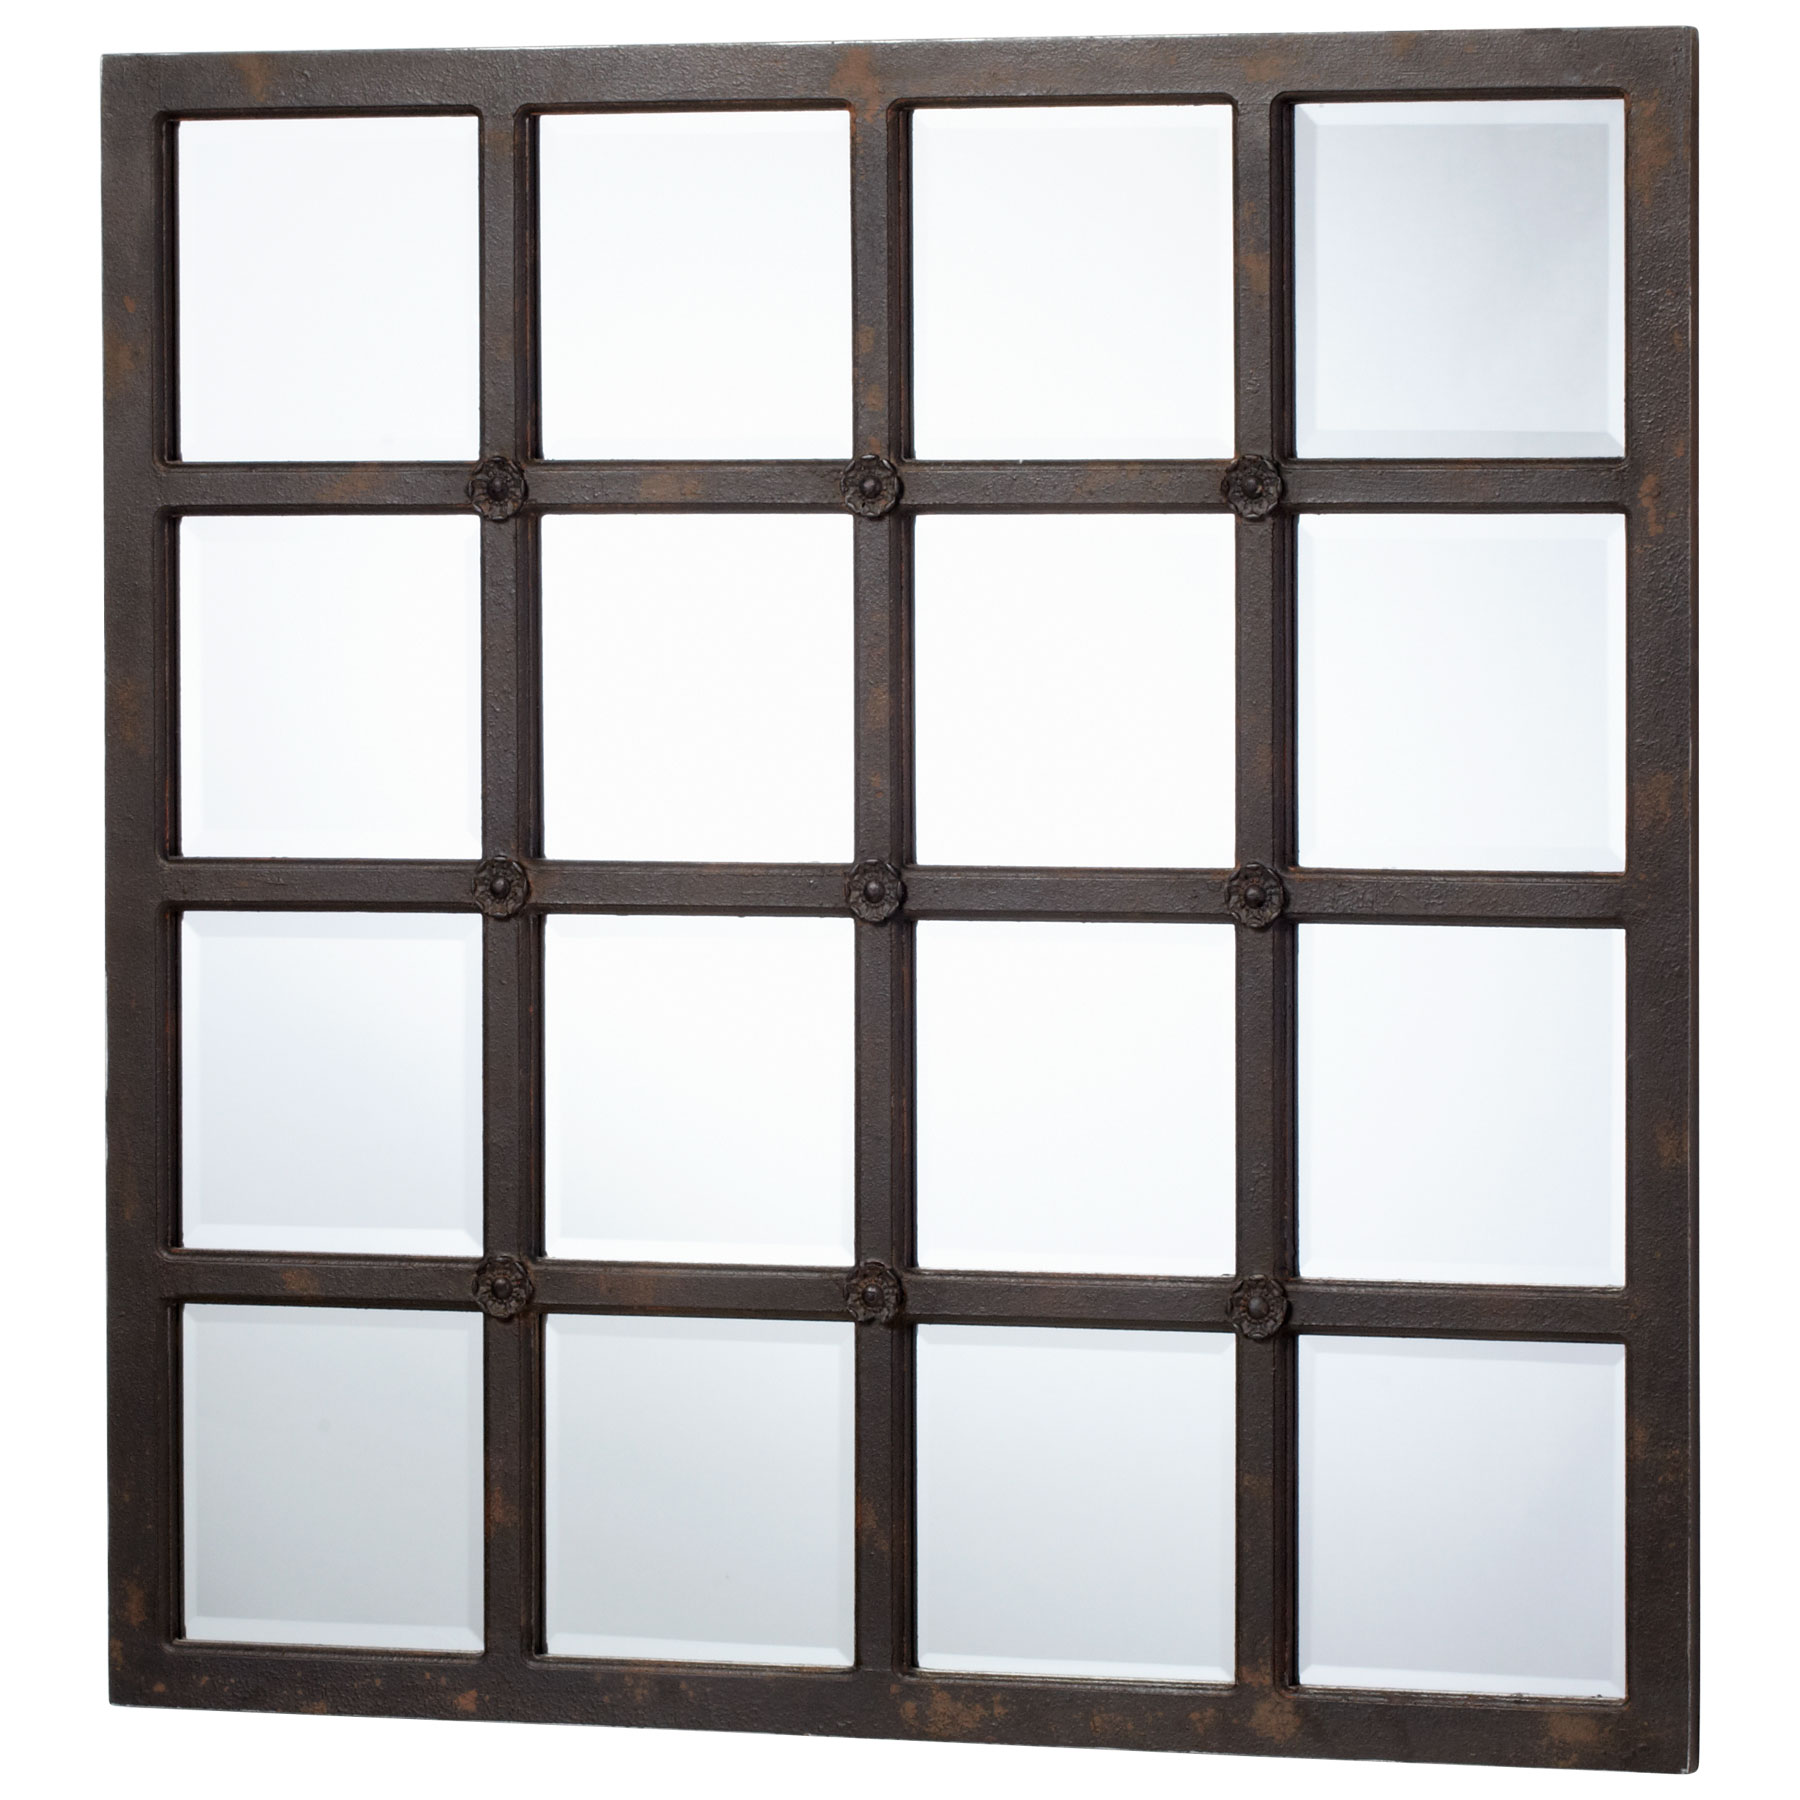 Chisum industrial loft large 48 iron square wall mirror for Big square wall mirror